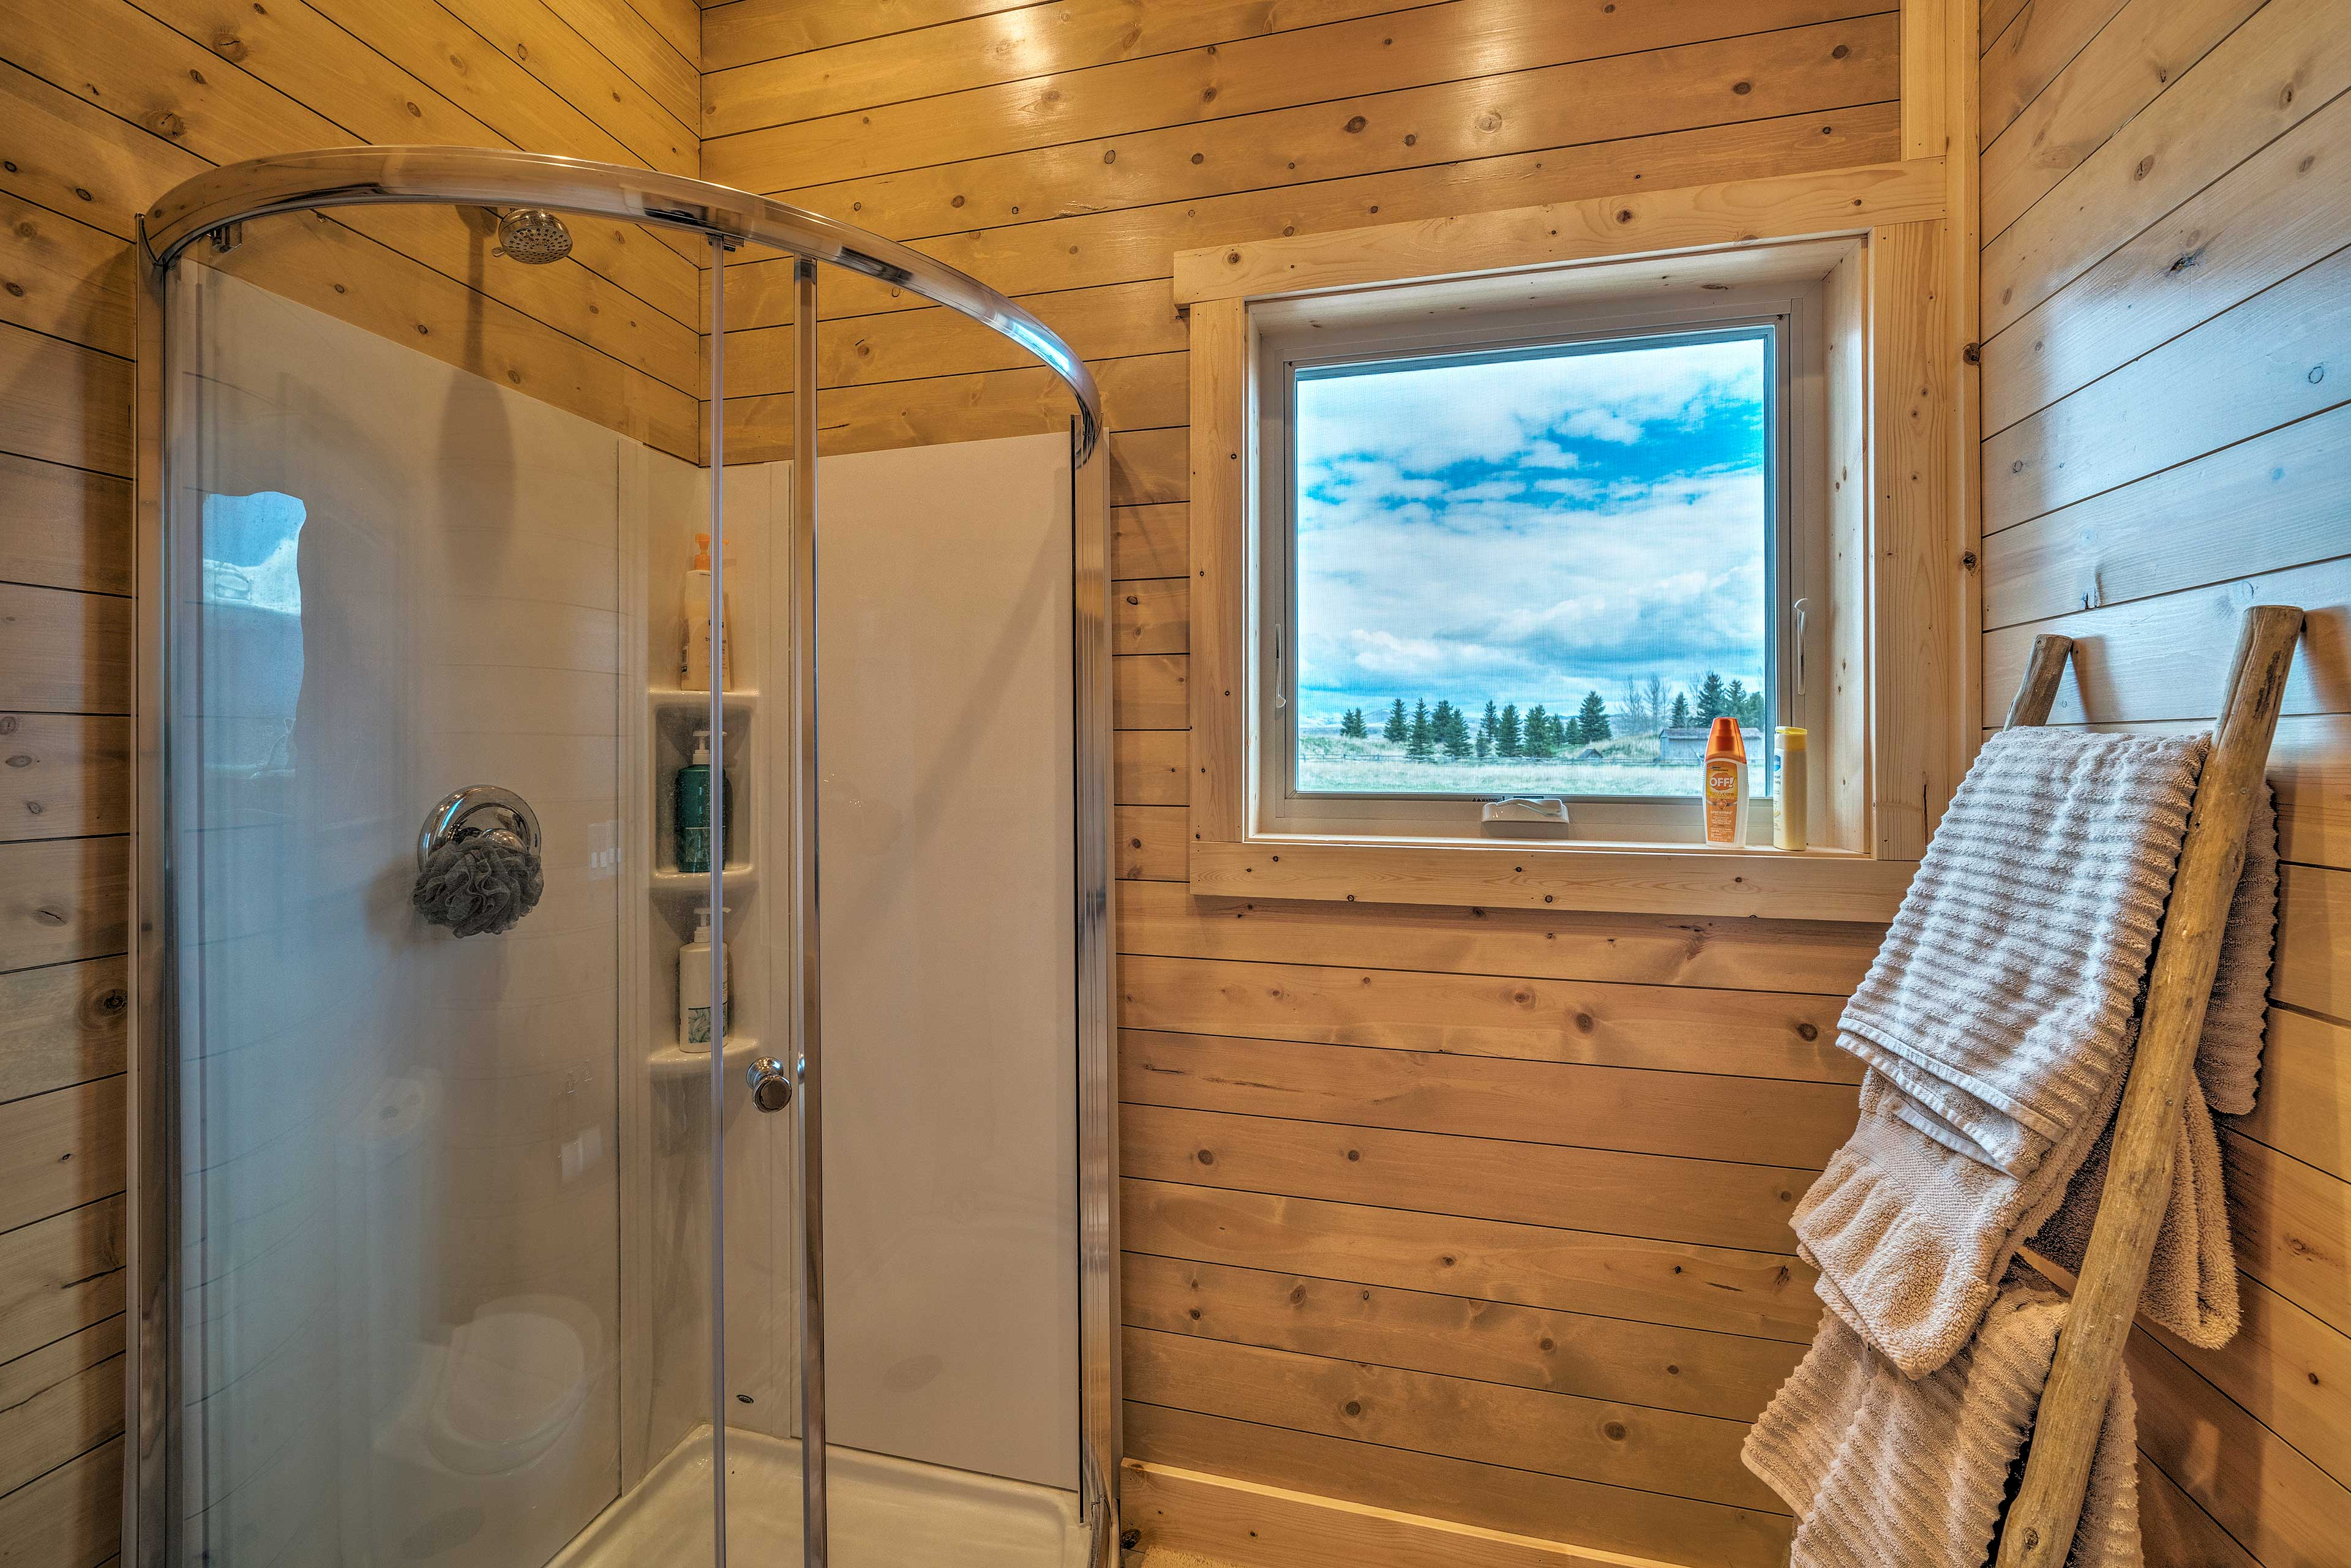 Rinse the day away in this walk-in shower.